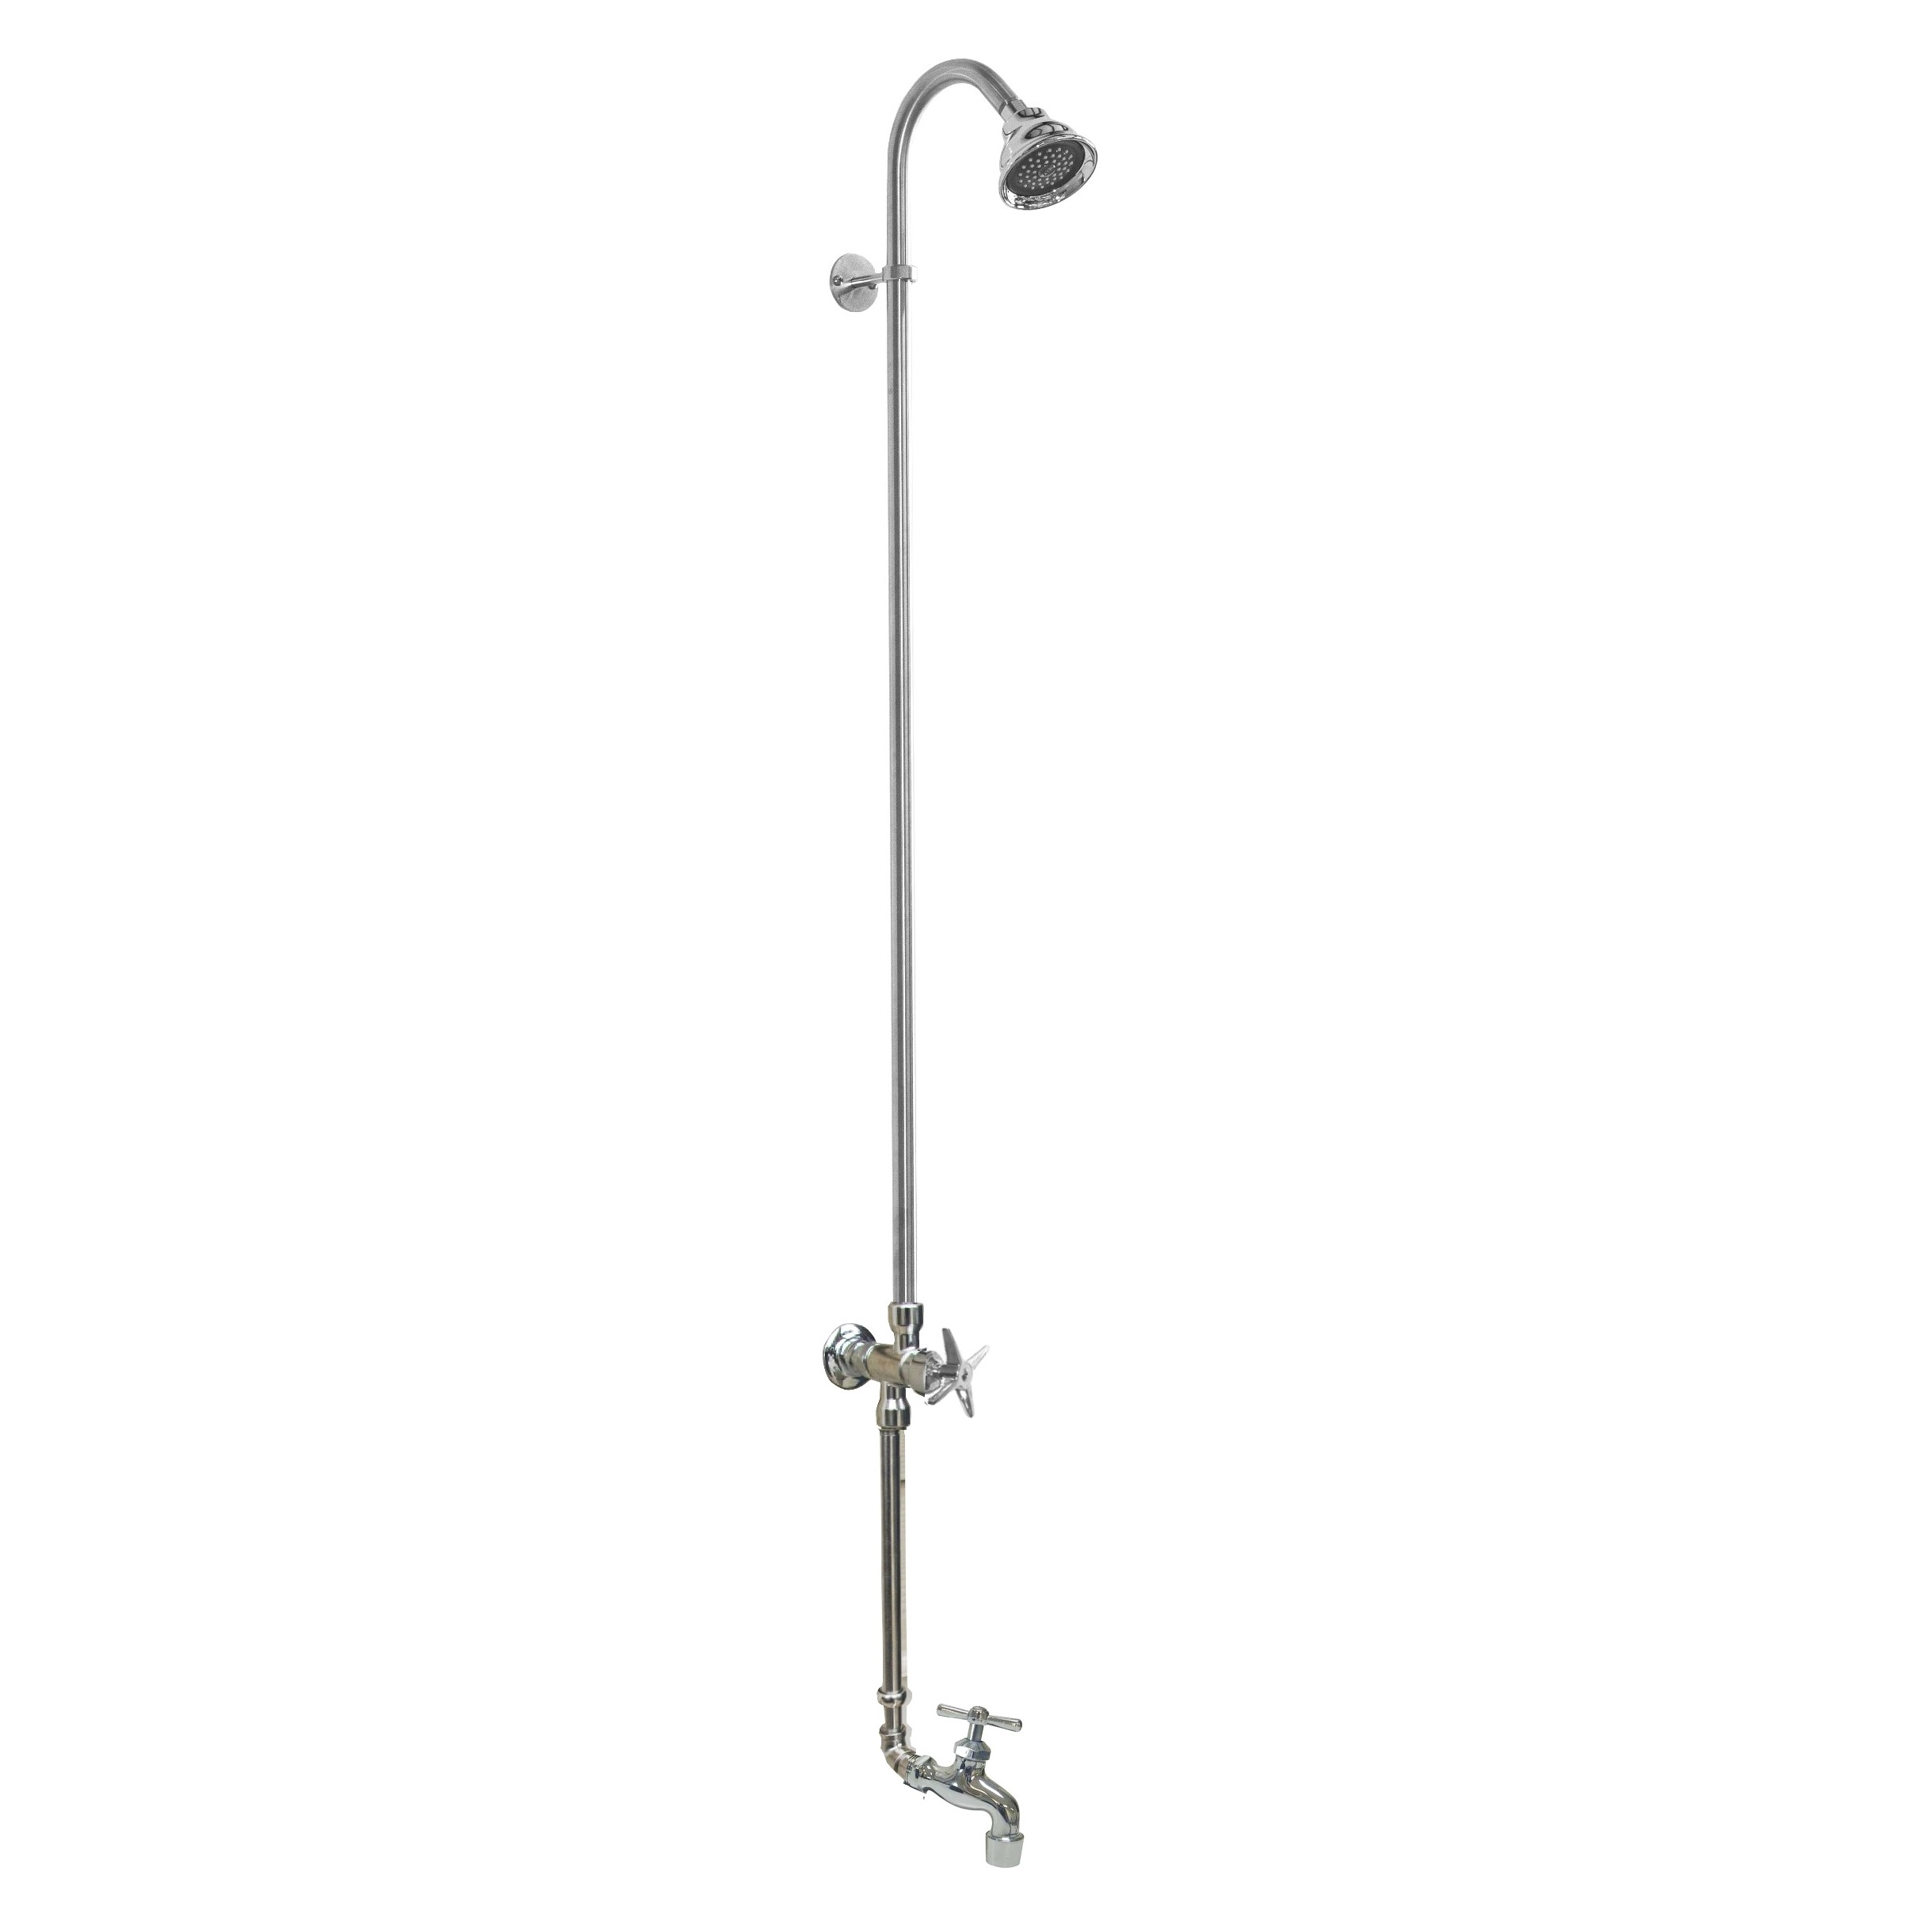 Outdoor Shower Company WM-442-CHV-HB Wall Mount Single Supply Shower